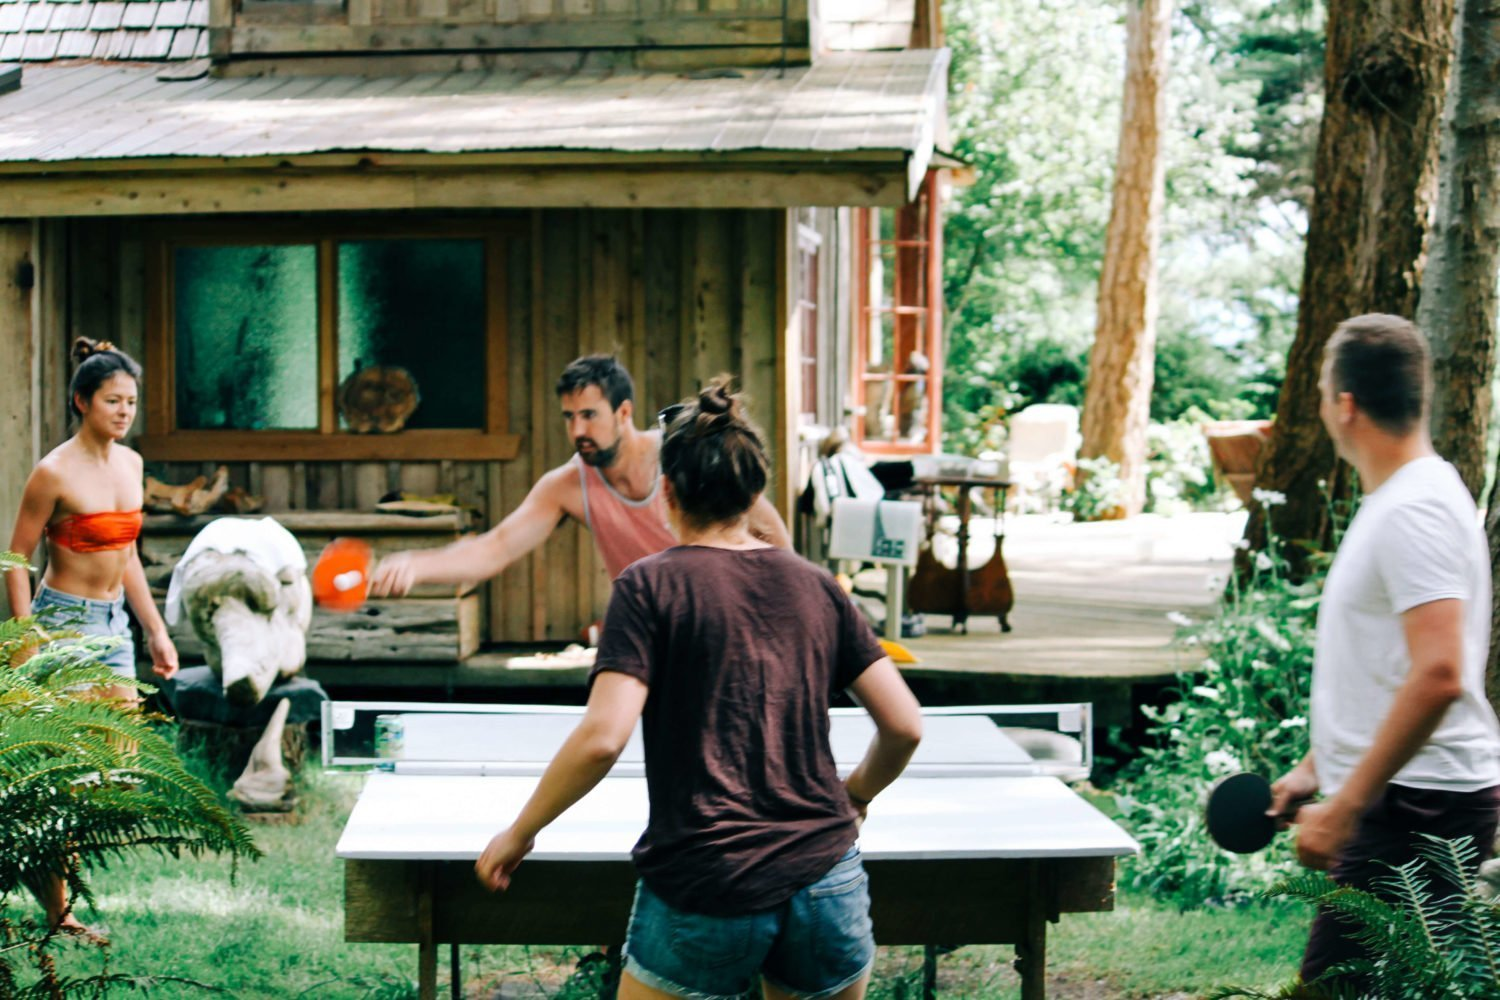 outdoor ping pong game on savary island